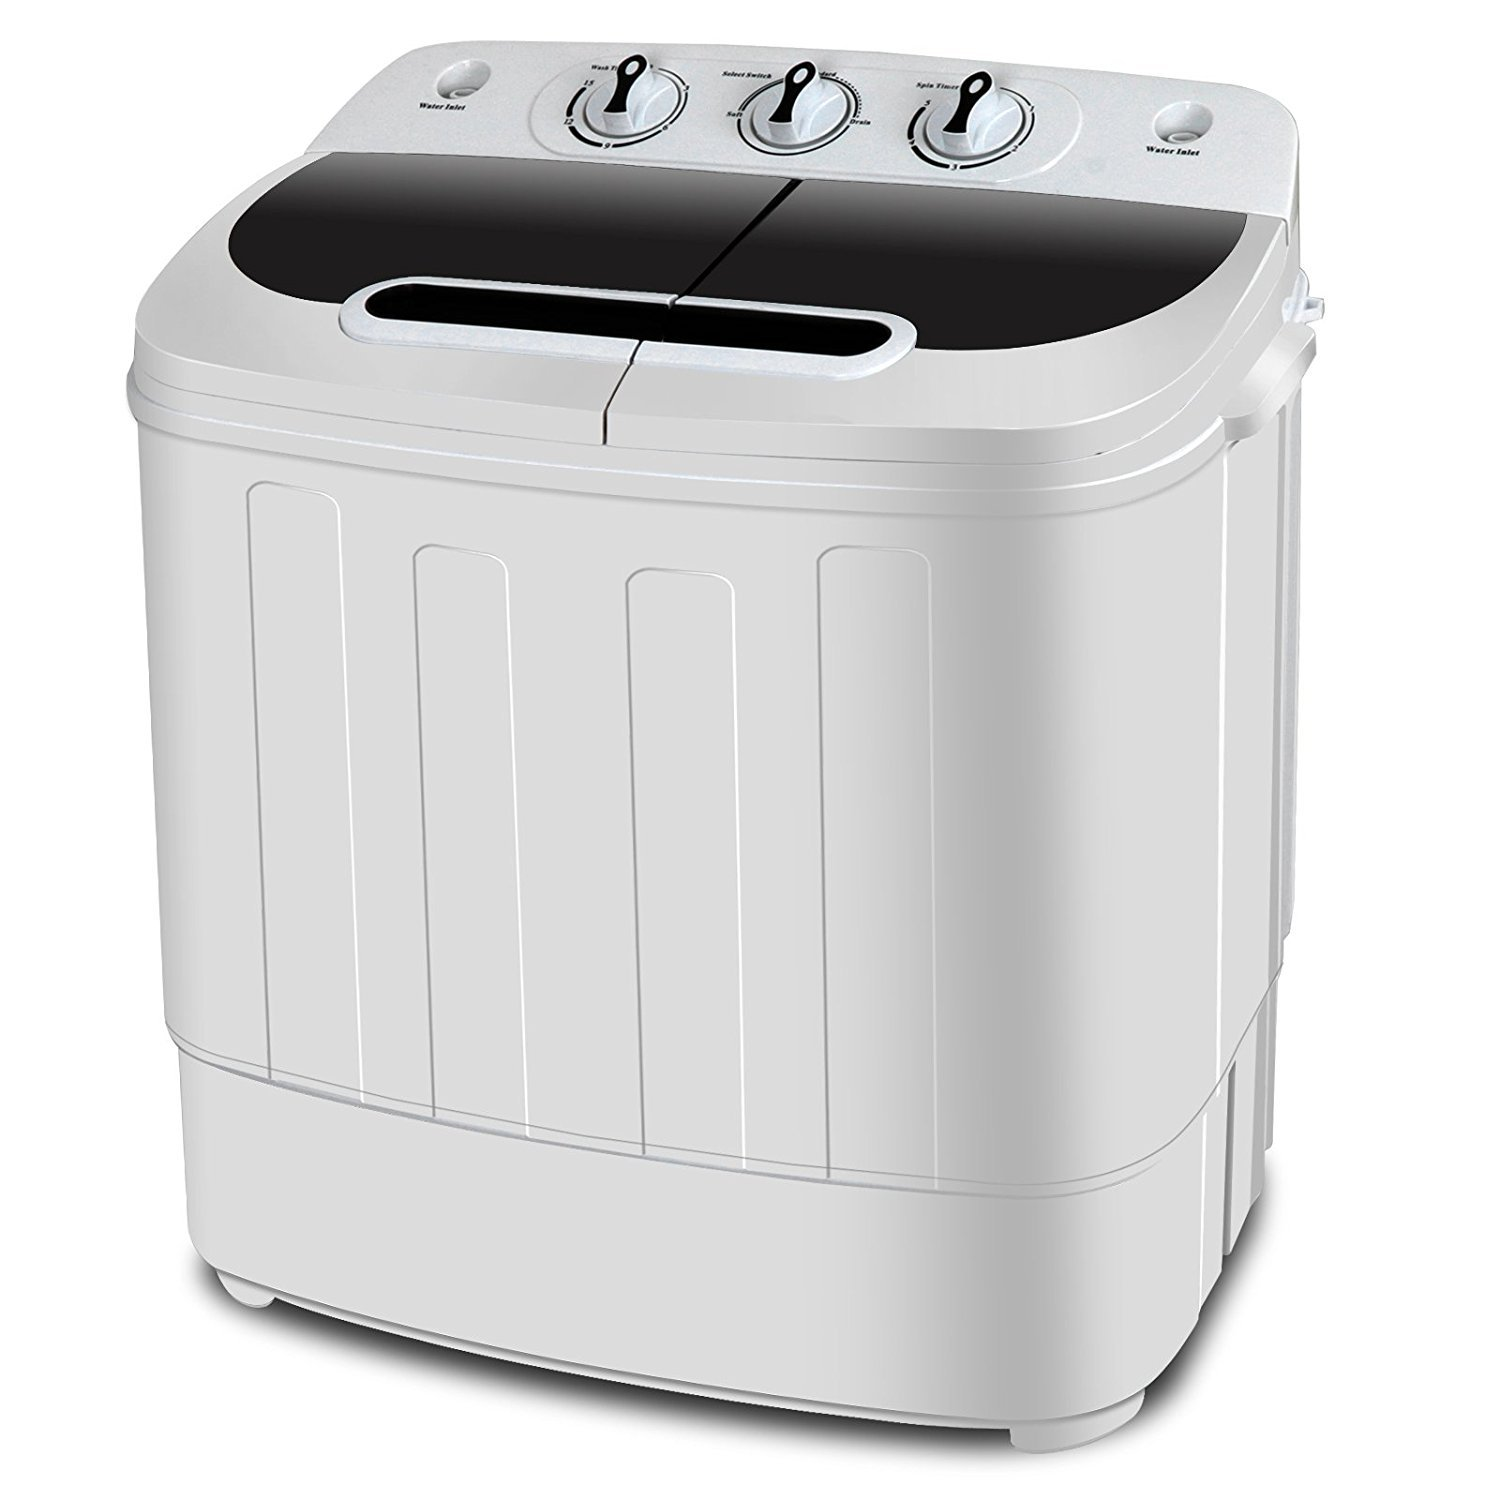 ZENY 2-in-1 Compact Mini Twin Tub Washing Machine w/Spin Cycle Dryer, 13Lbs Capacity w/Hose, Space/Time/Energy Saving